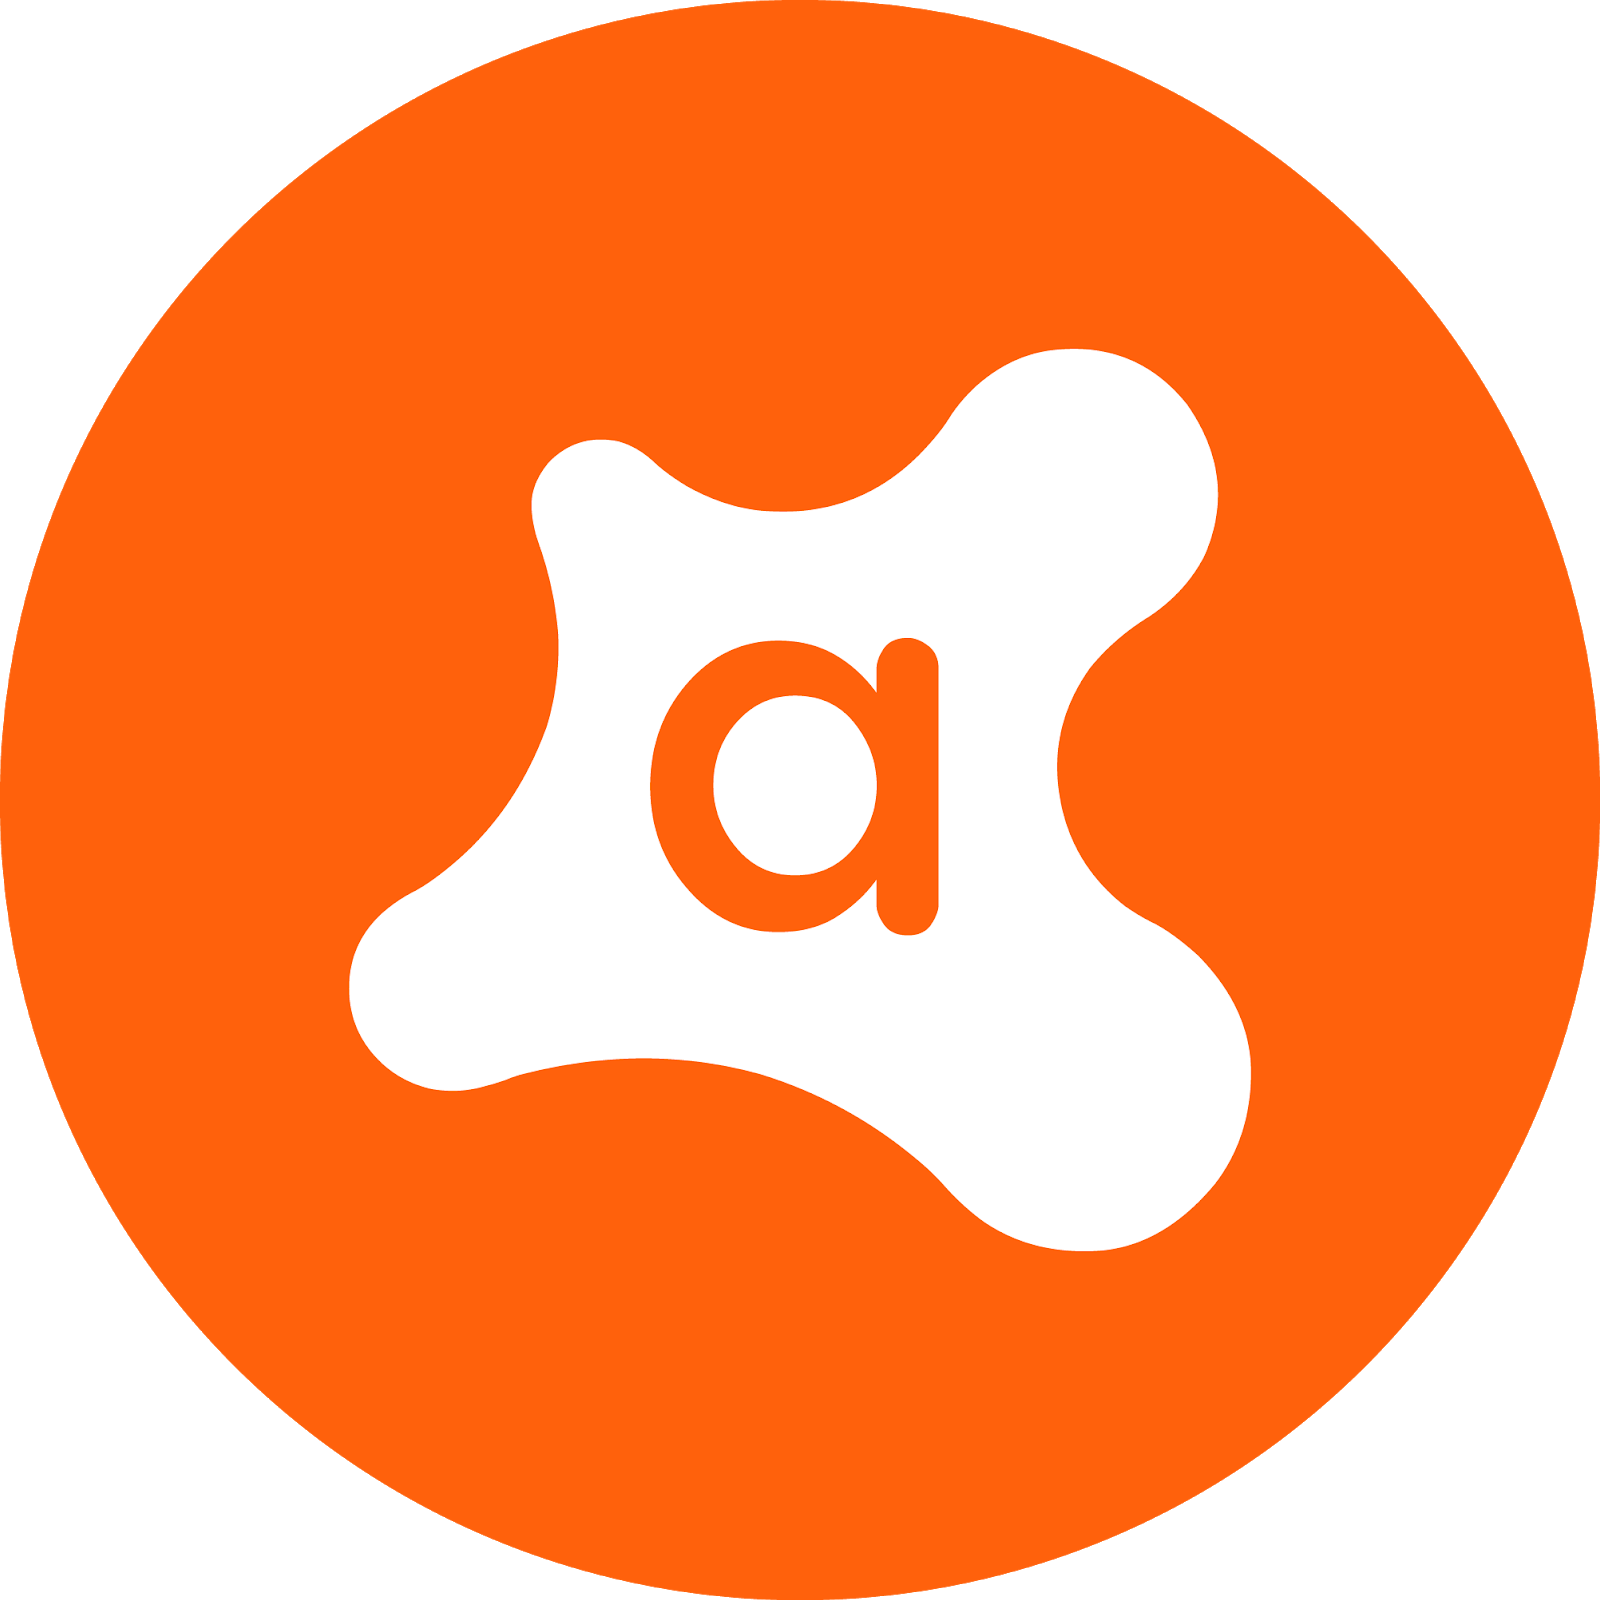 download icon avast software svg eps png psd ai vector